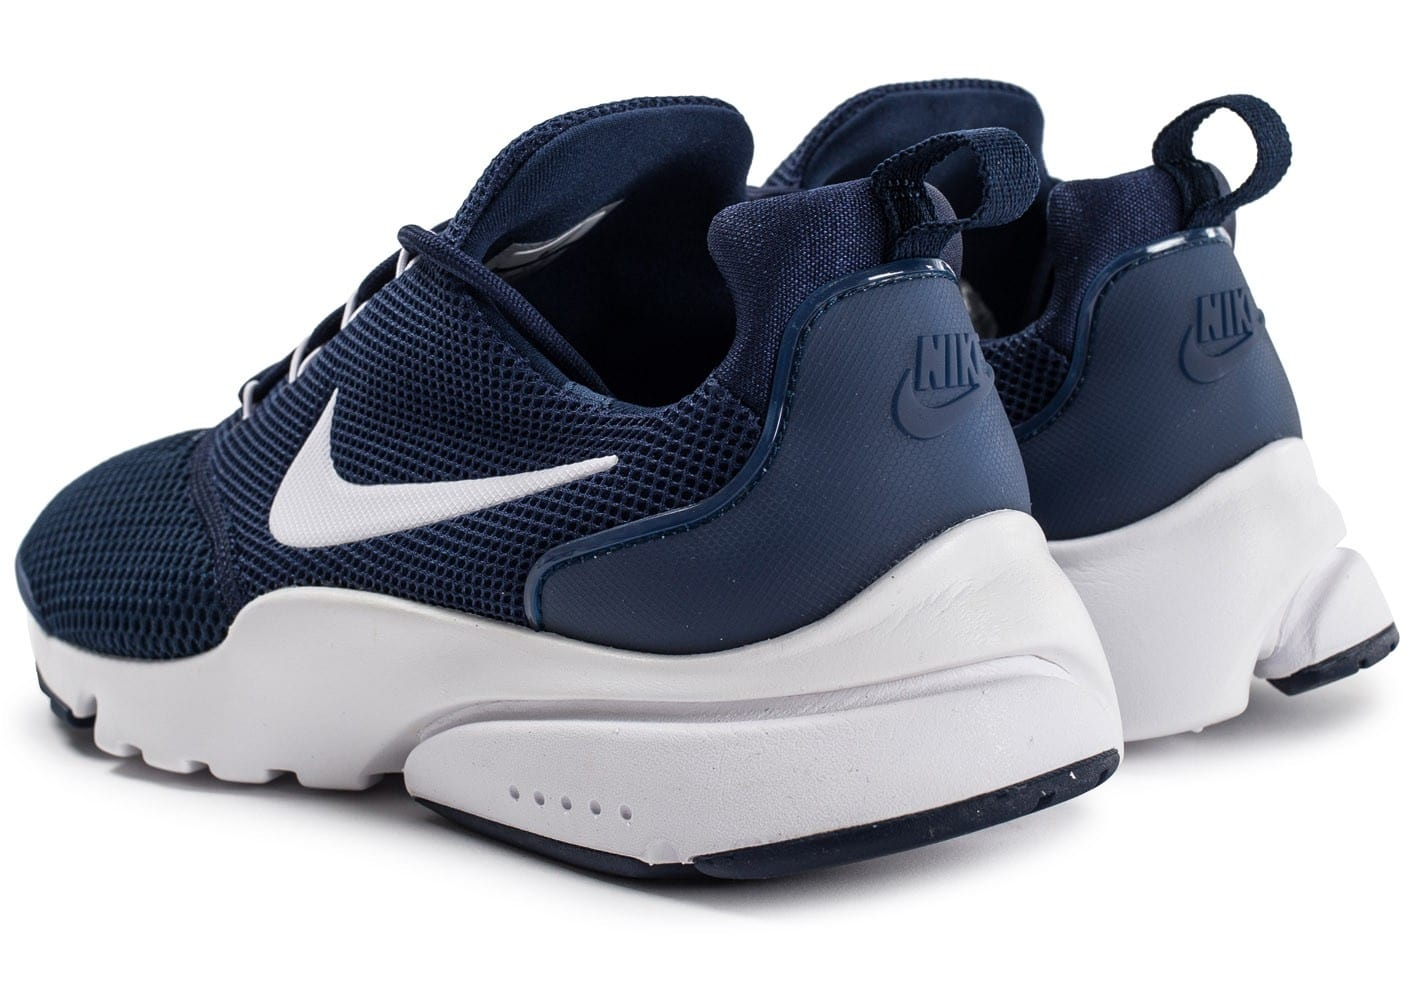 promo code ad455 249ab ... chaussures nike presto fly bleu marine vue arriere